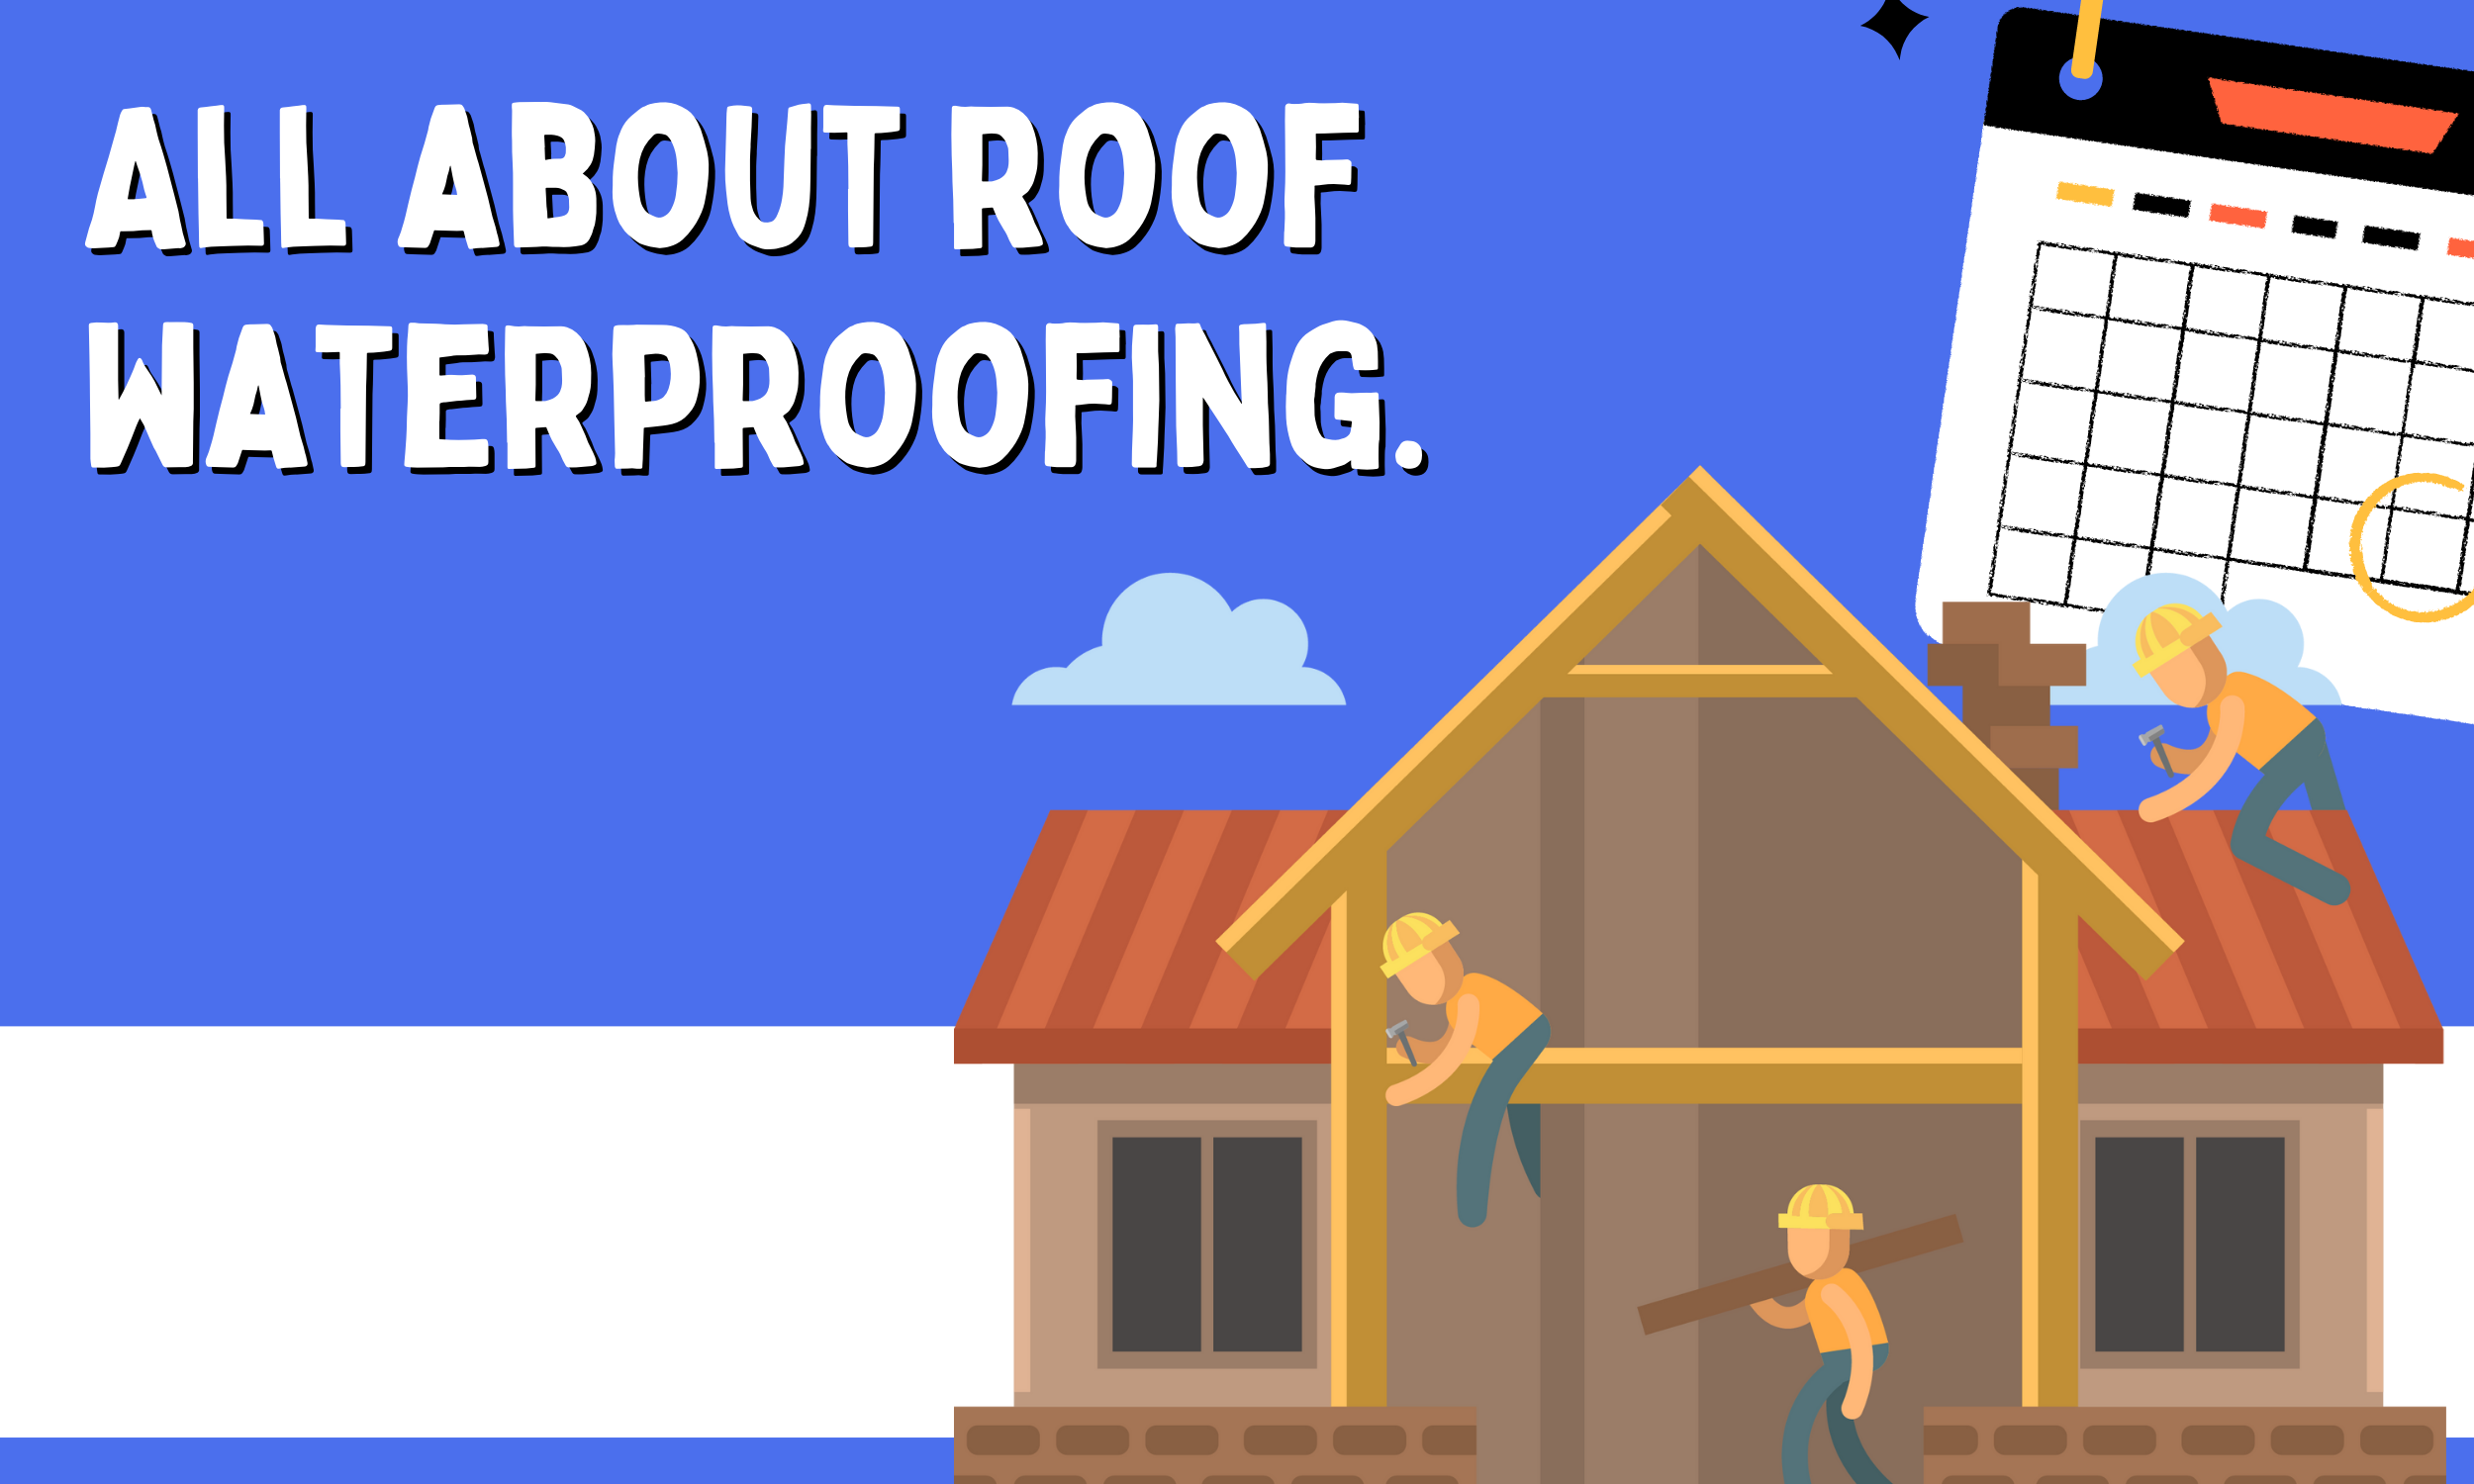 All-about-roof-waterproofing